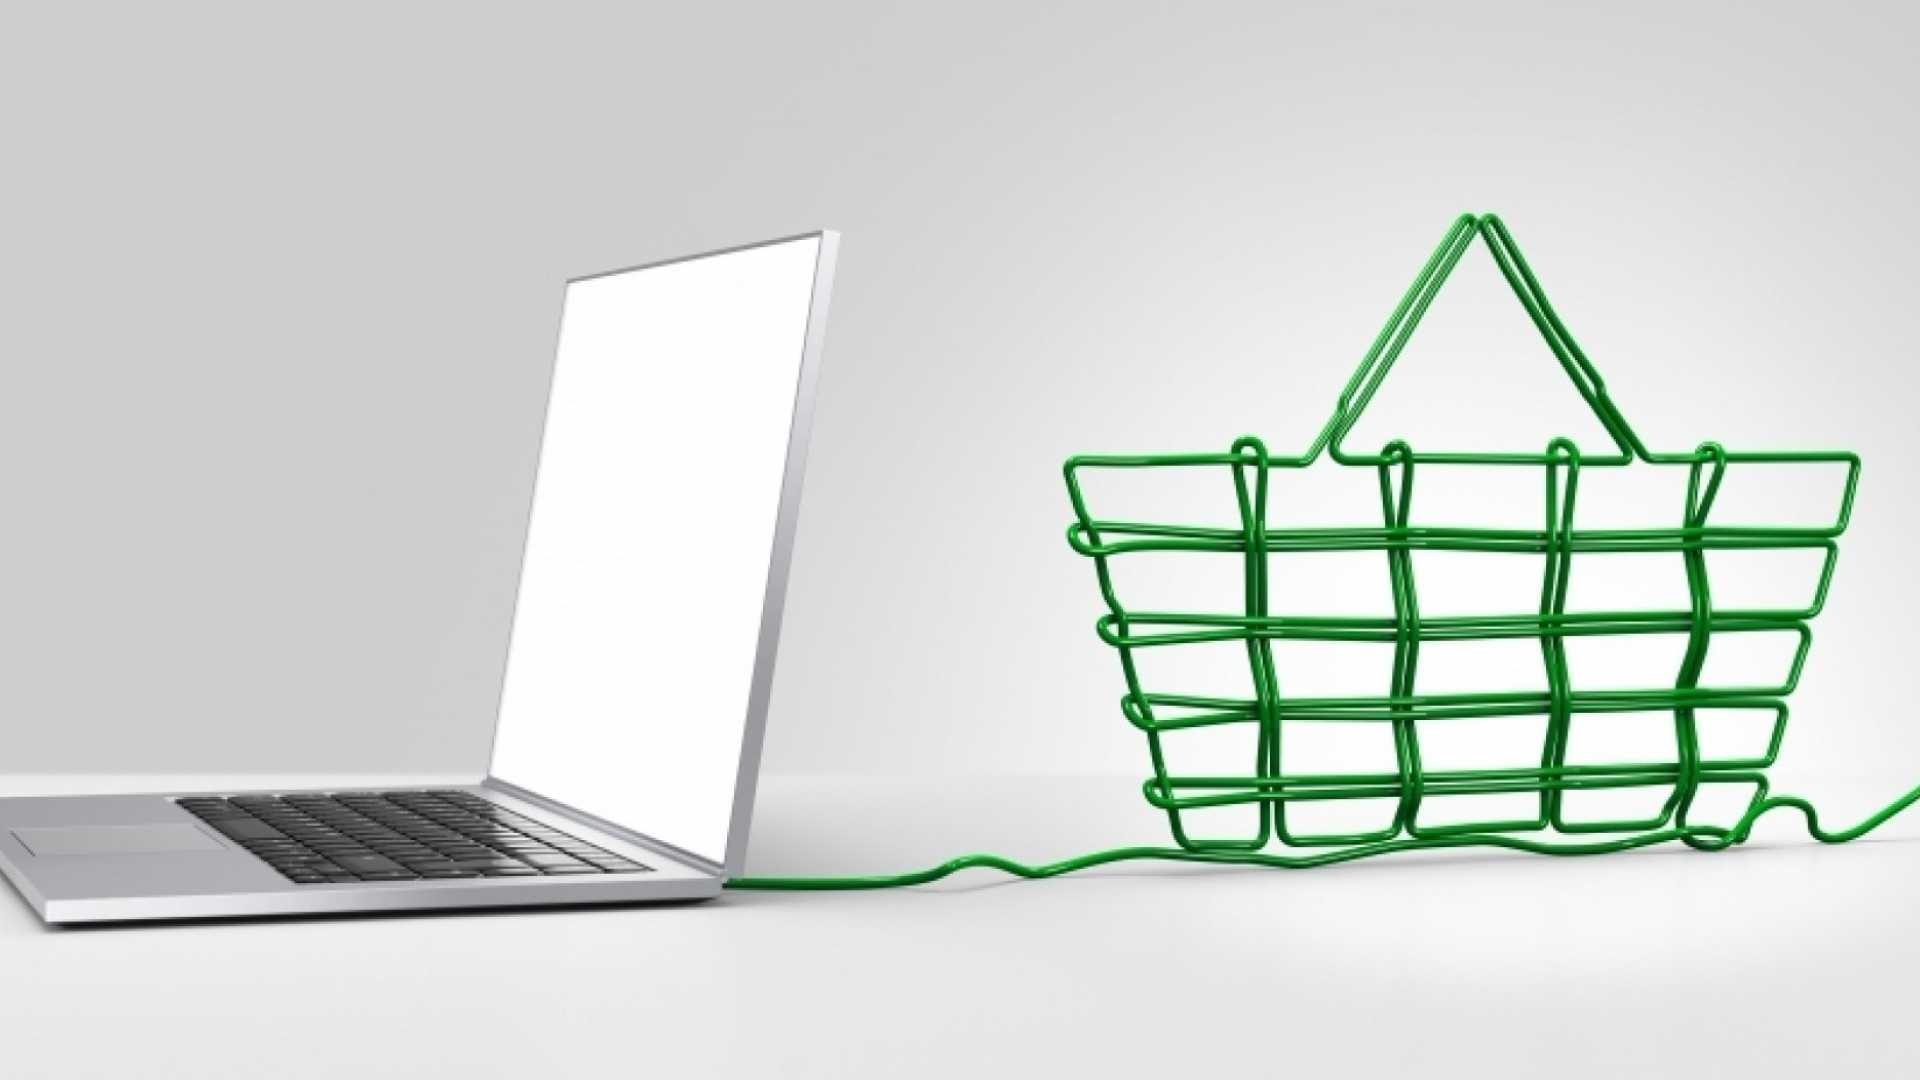 8 Tips for Creating an E-Commerce Business